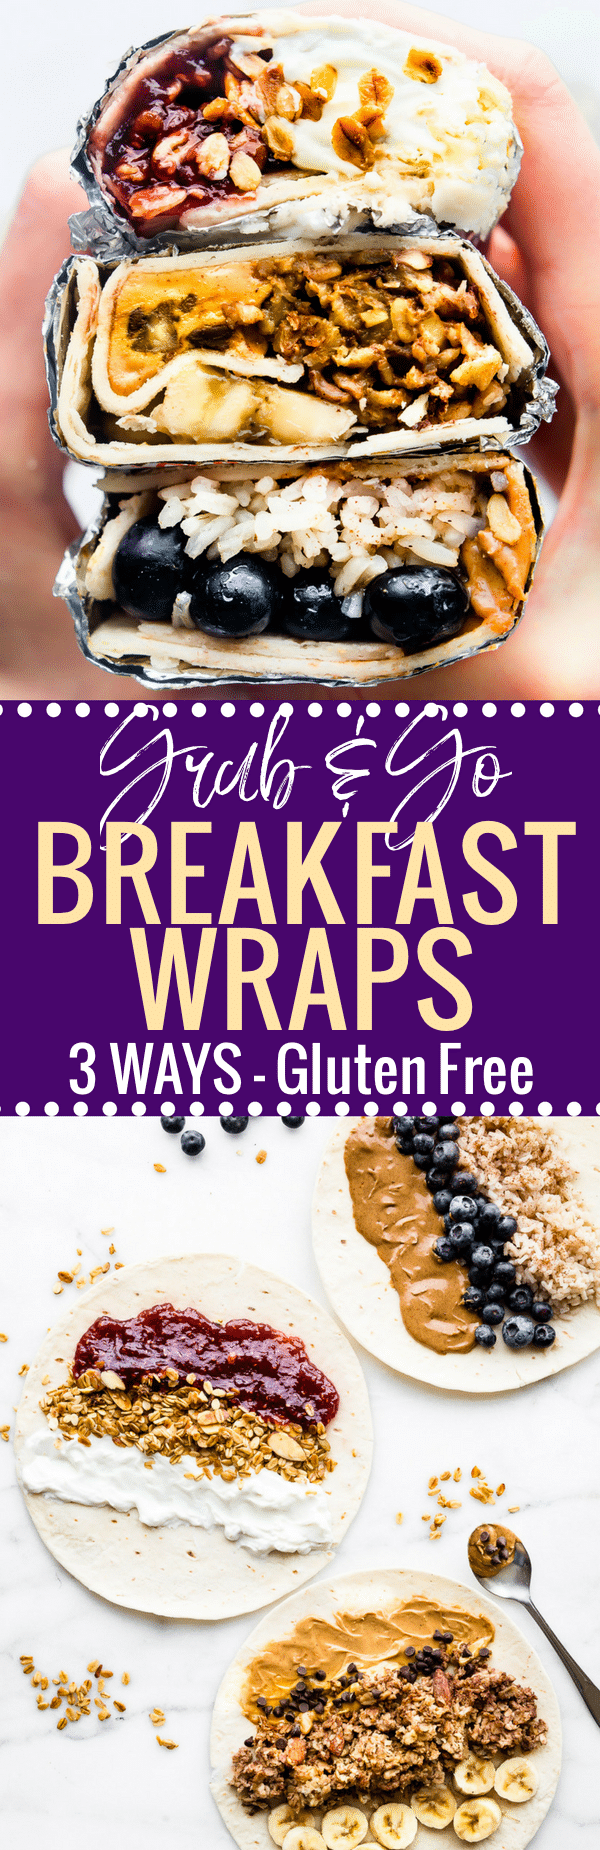 These sweet Gluten Free breakfast wraps are the perfect grab and go breakfast! Portable, freezer friendly, and filled with wholesome simple ingredients! Literally a healthy breakfast bowl wrapped up to go, 3 ways! Healthy breakfast wraps will satisfy your hunger and busy schedule. www.cottercrunch.com #udisglutenfree